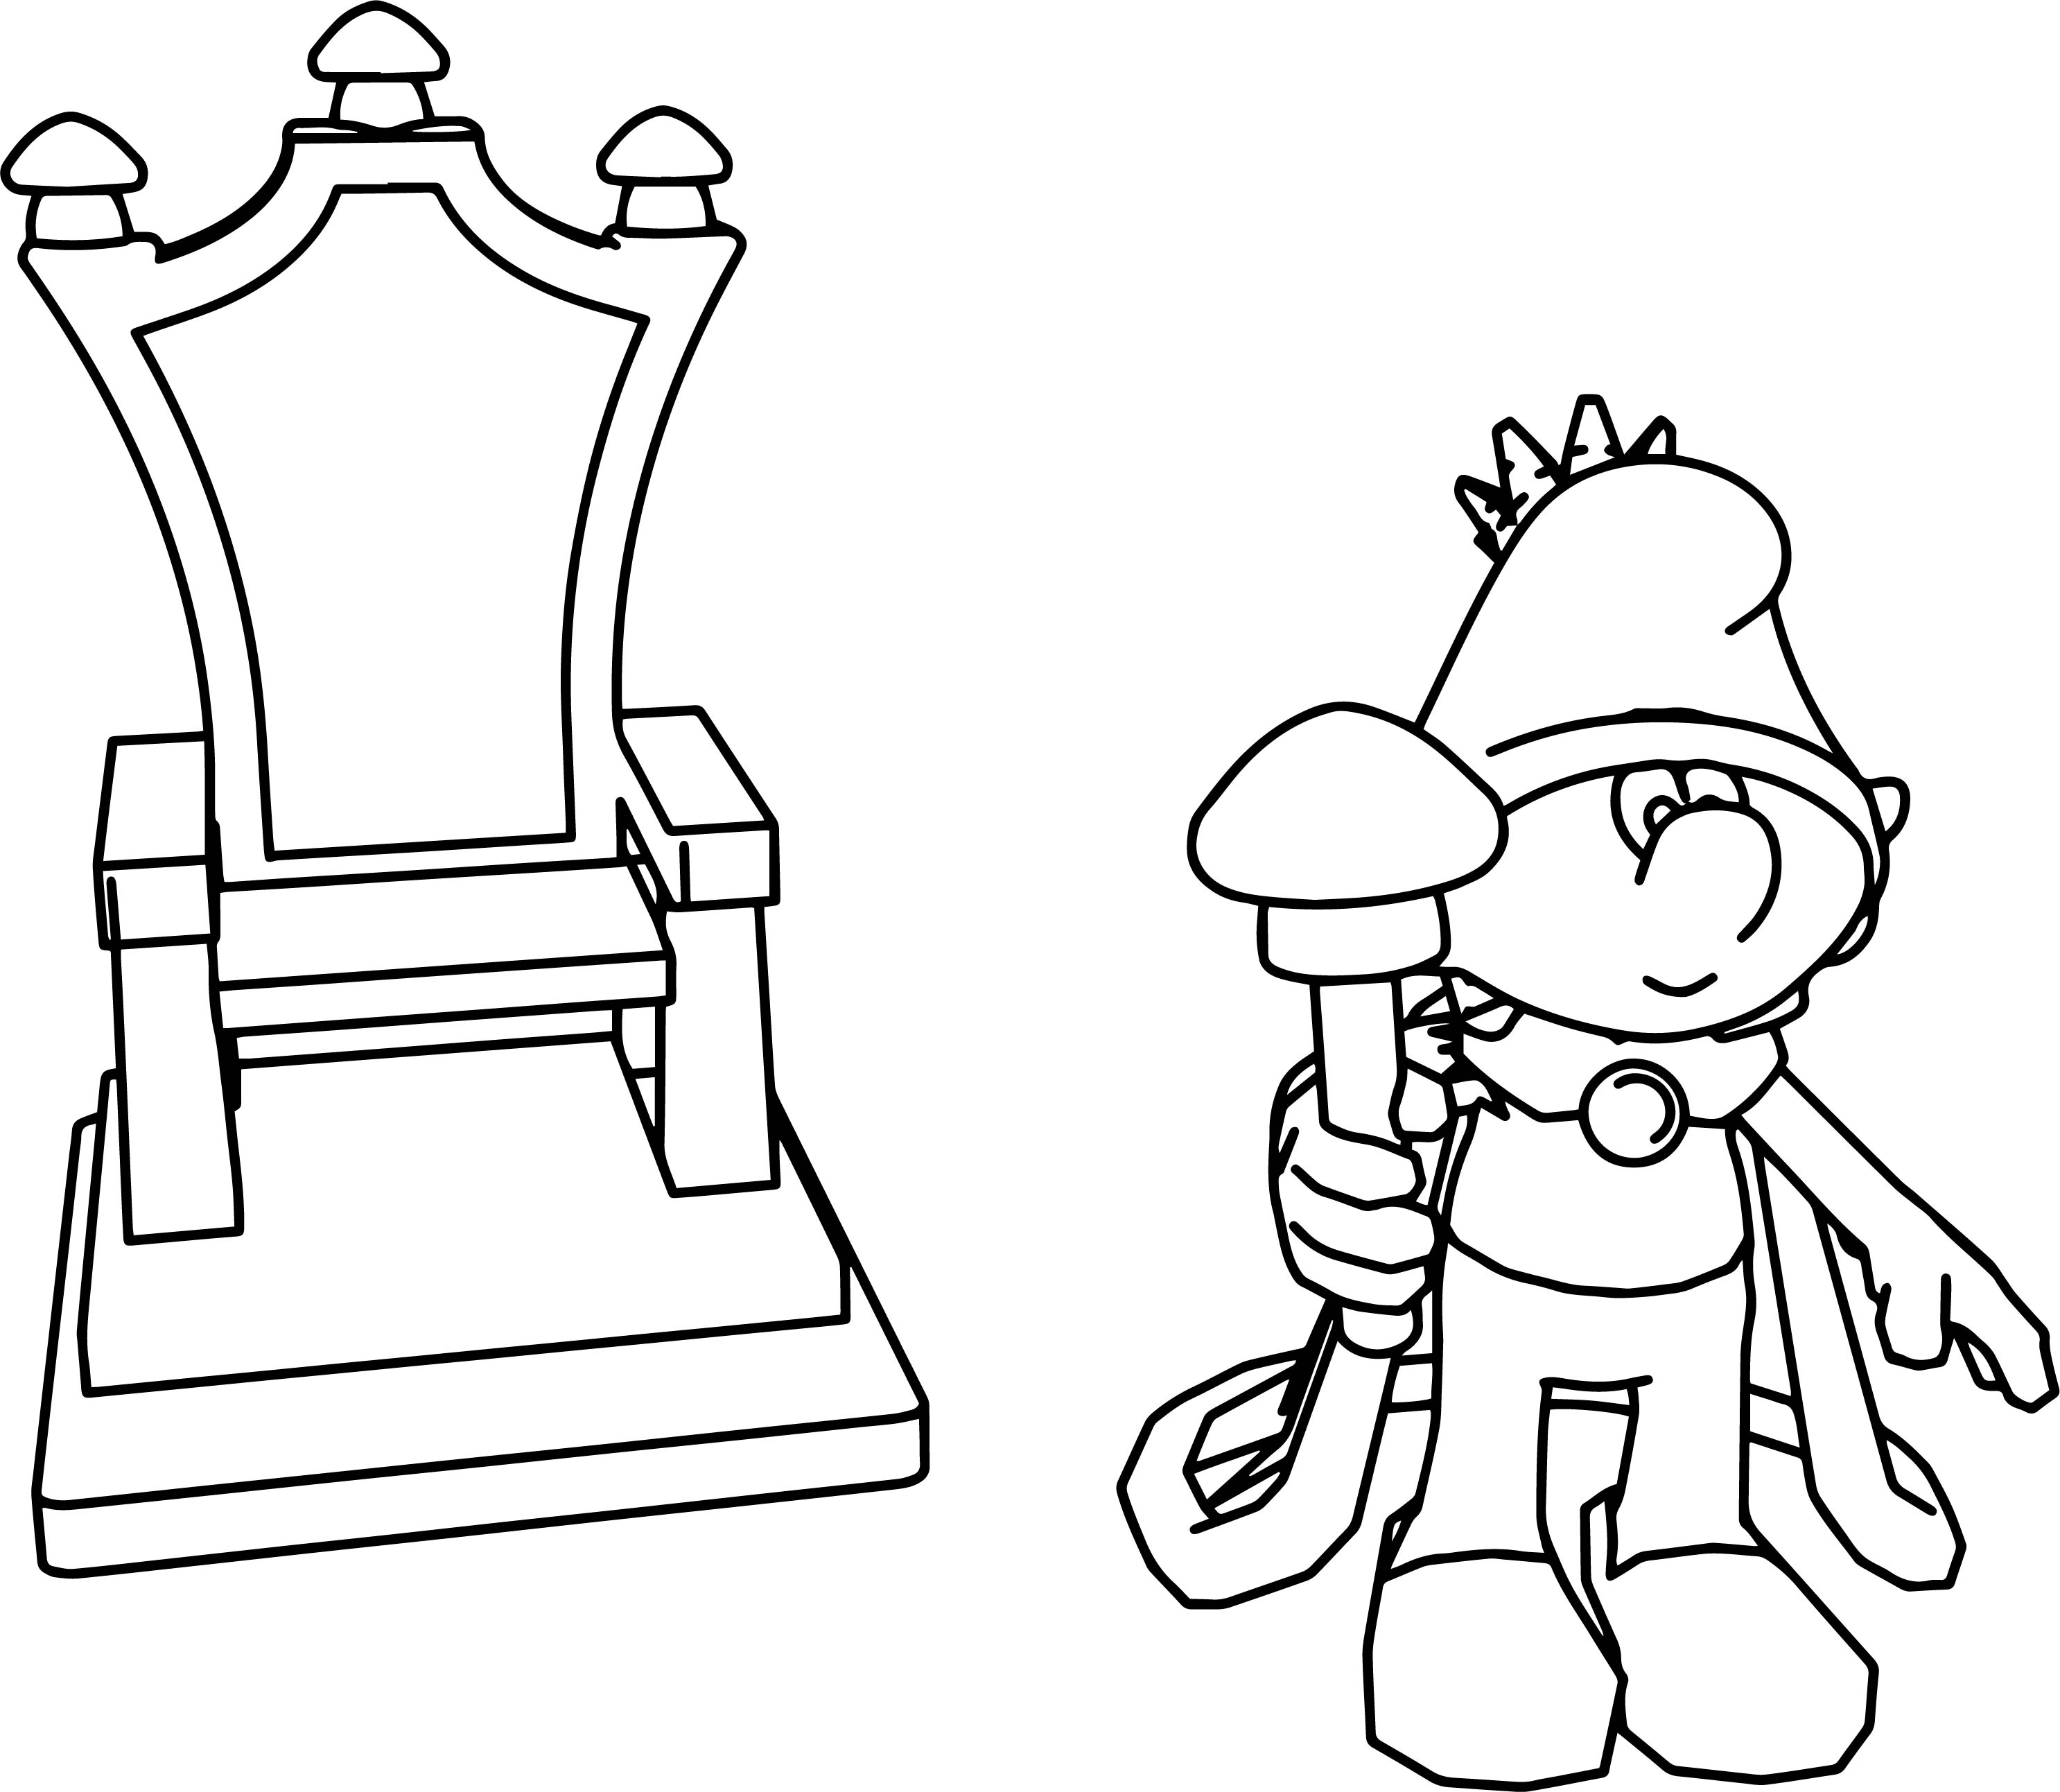 king smurf throne coloring page